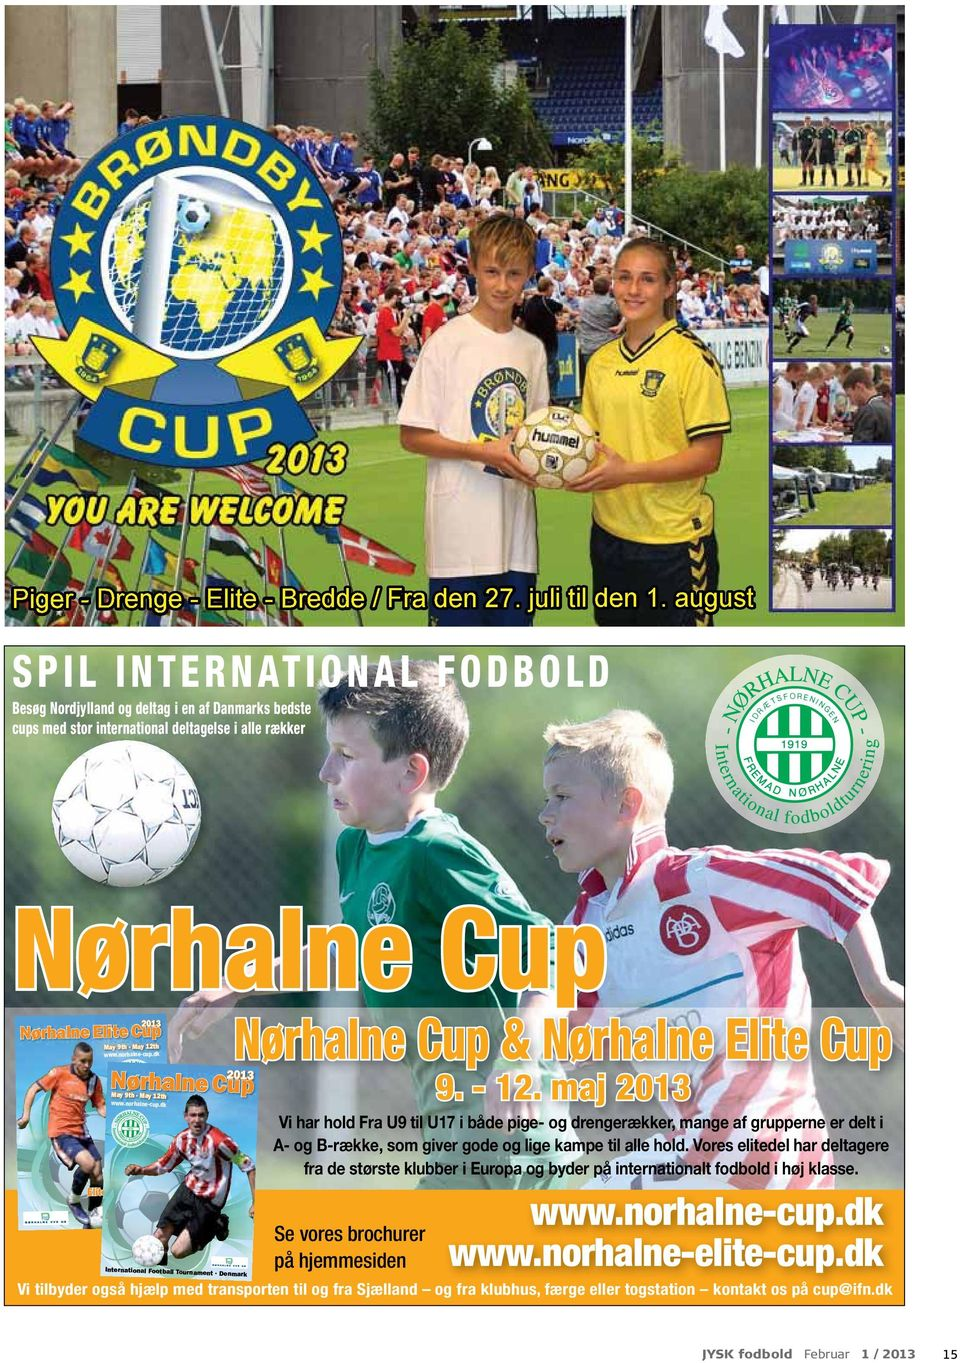 2013 2013 May 9th - May 12th www.norhalne-cup.